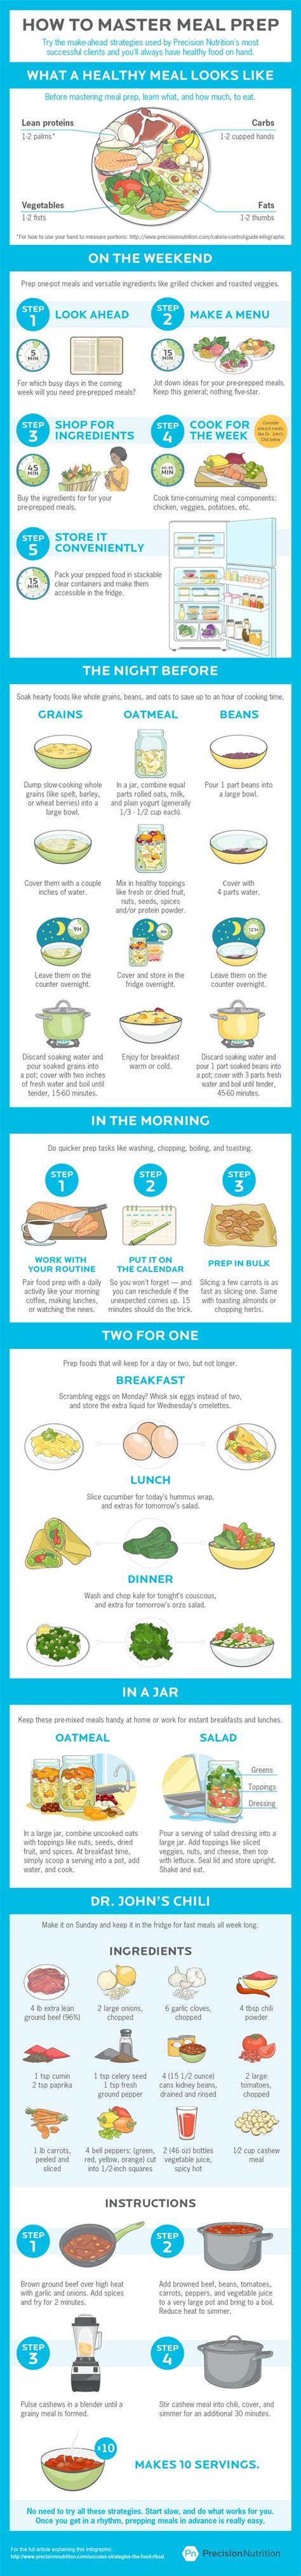 Best 25 Weekly Meal Plans Ideas On Pinterest Weekly Dinner Plan Diet Meal Plans And Diet Menu Precision Nutrition Meal Plan Template